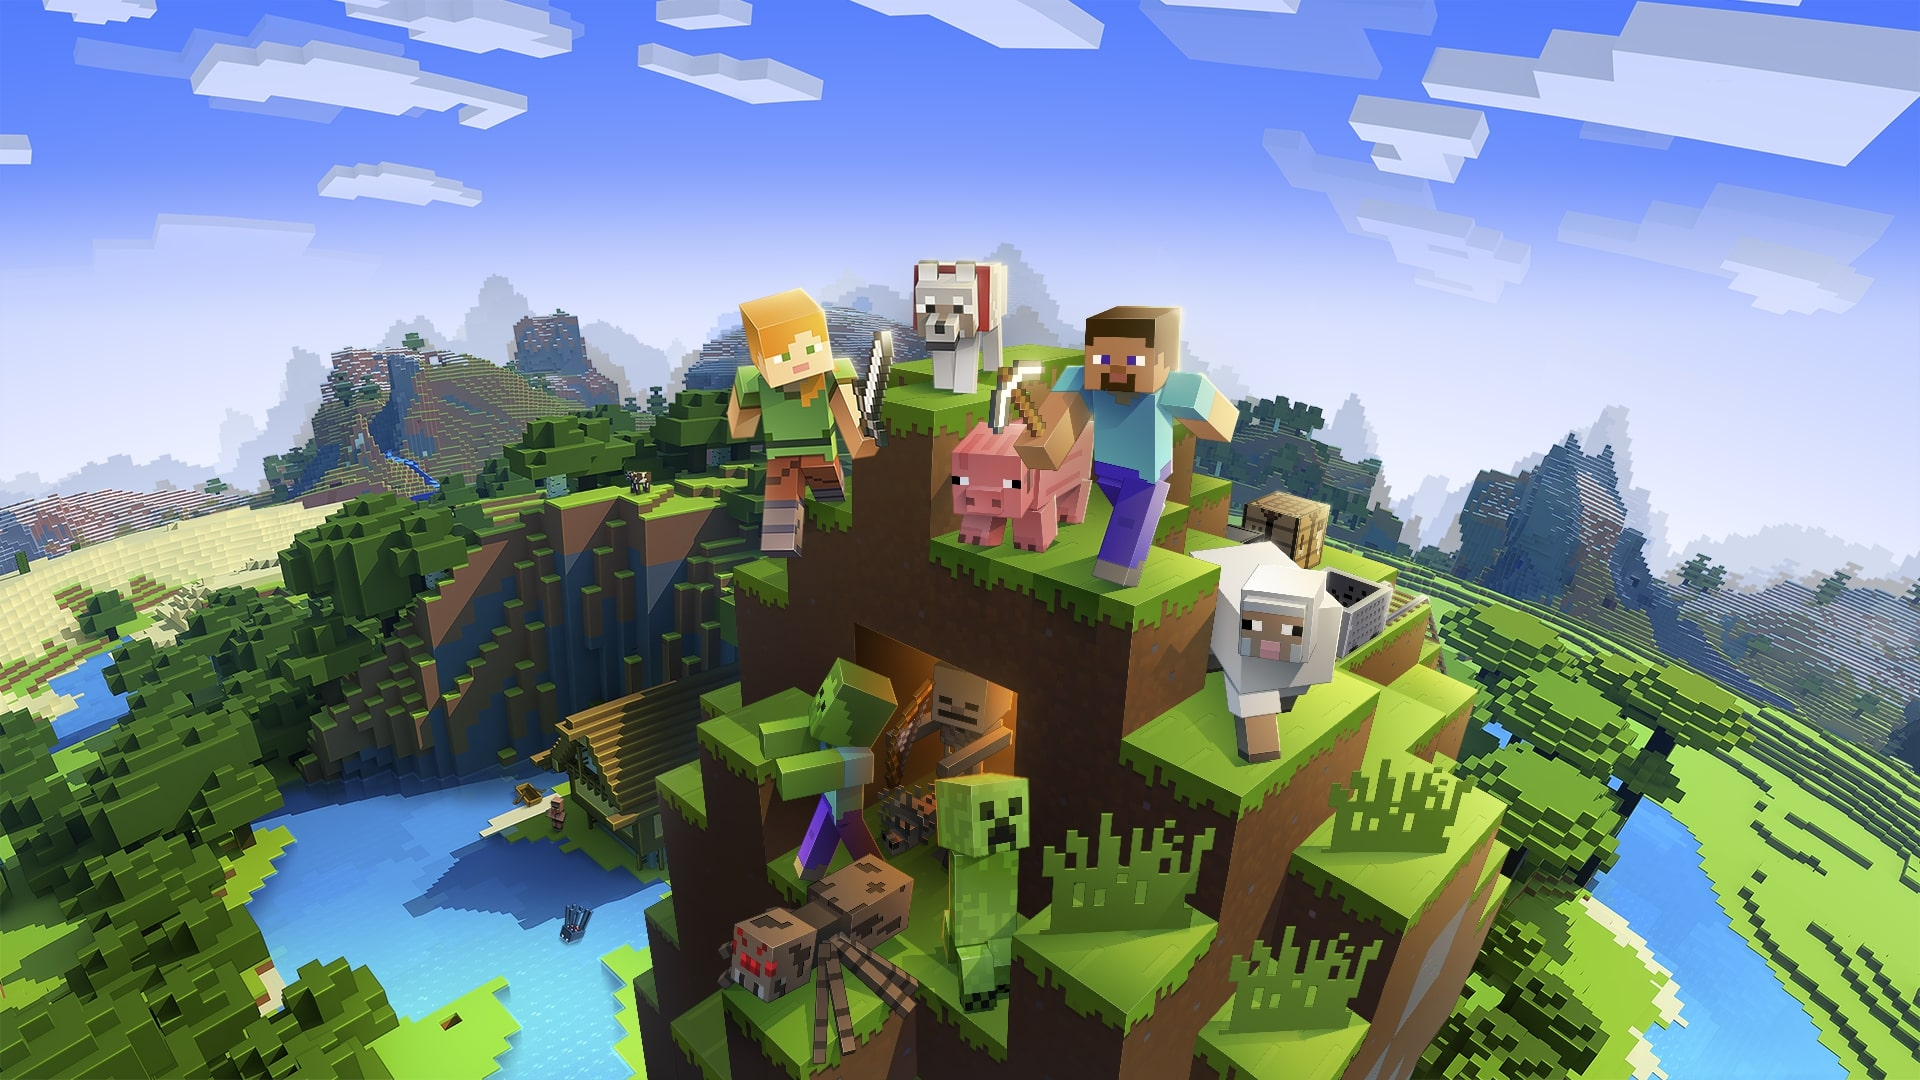 Best Minecraft skins | GamesRadar+